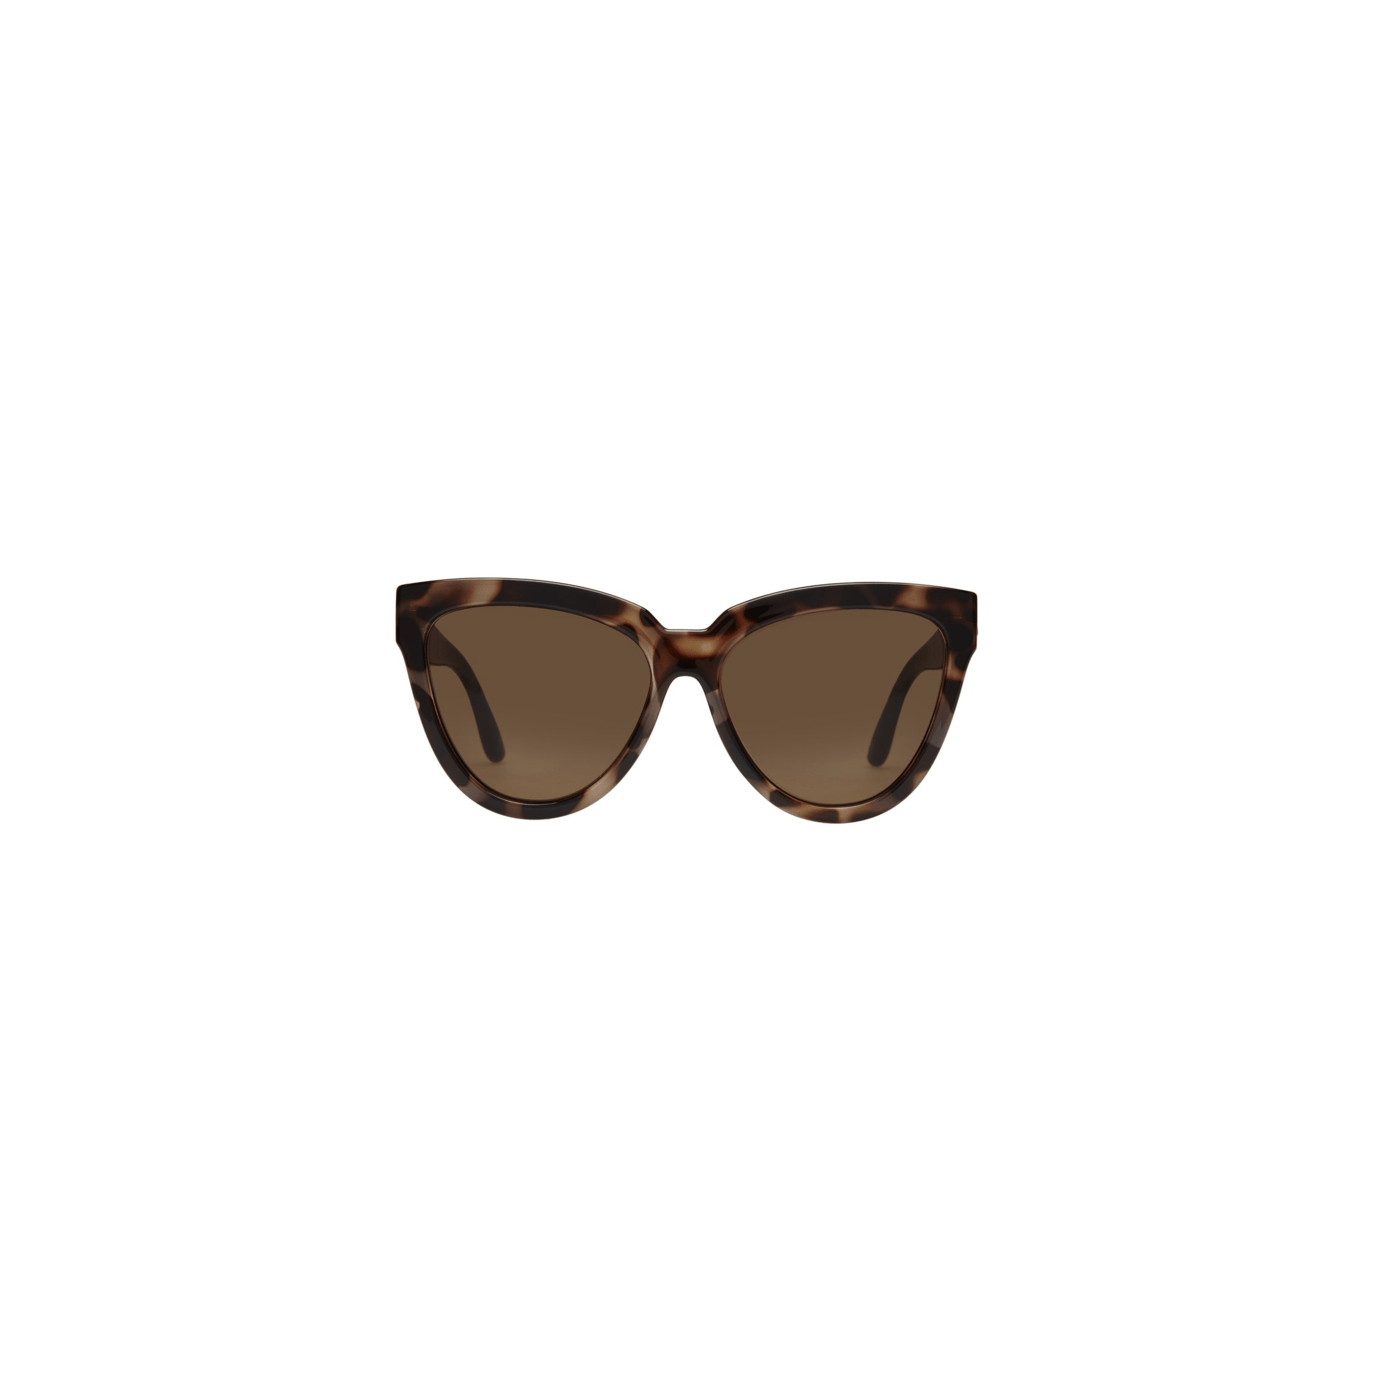 Liar Lair Sunglasses / Neighborhood Goods